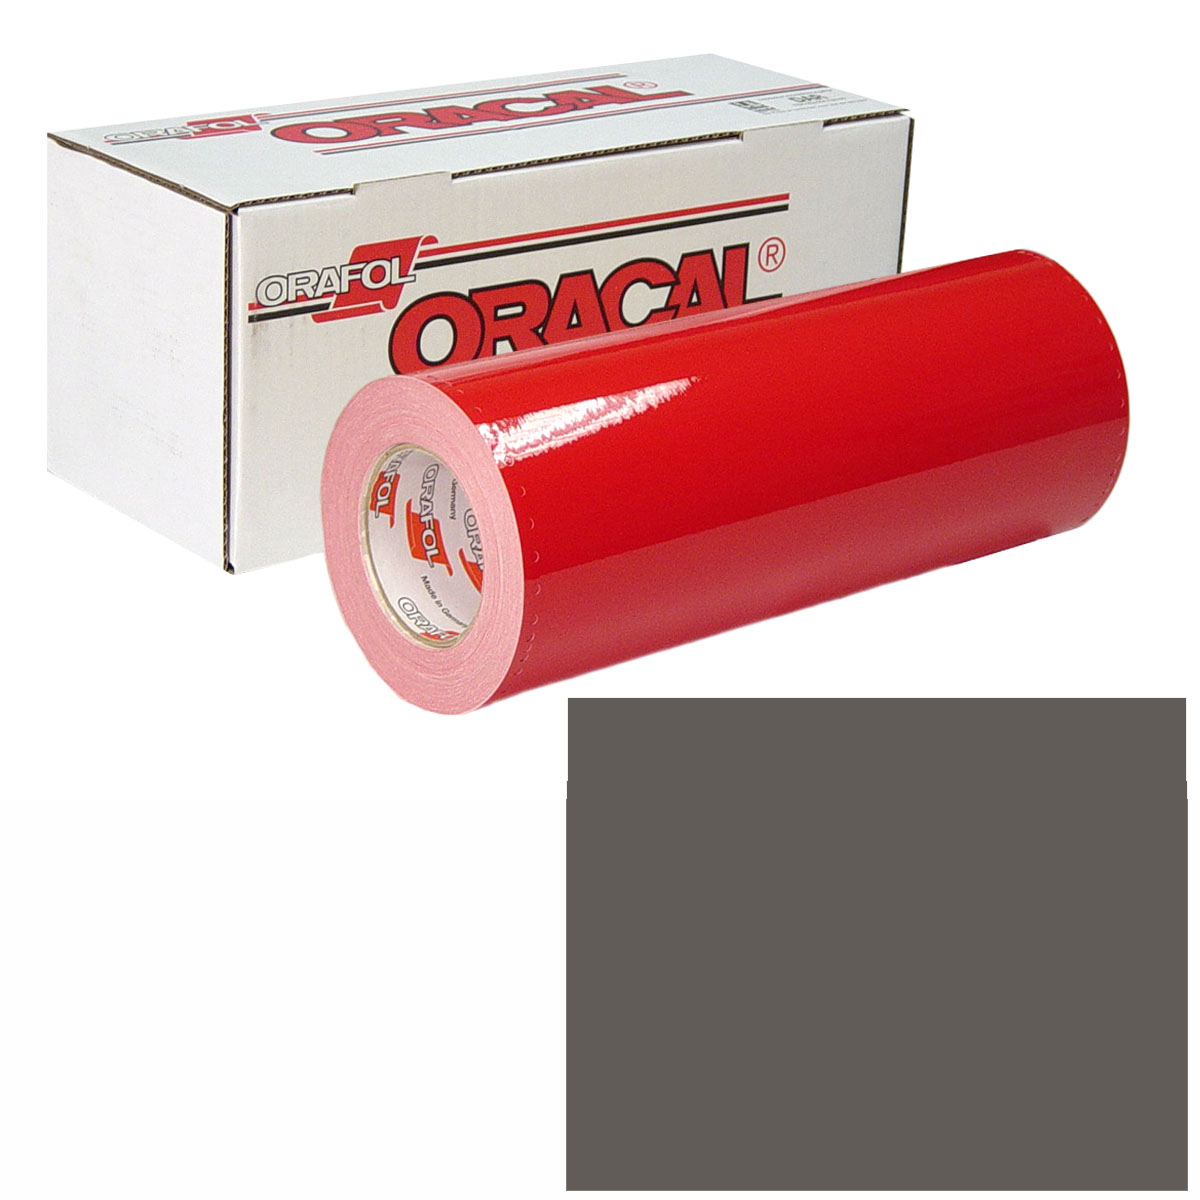 ORACAL 951M 30in X 10yd 934 Zinc Metallic